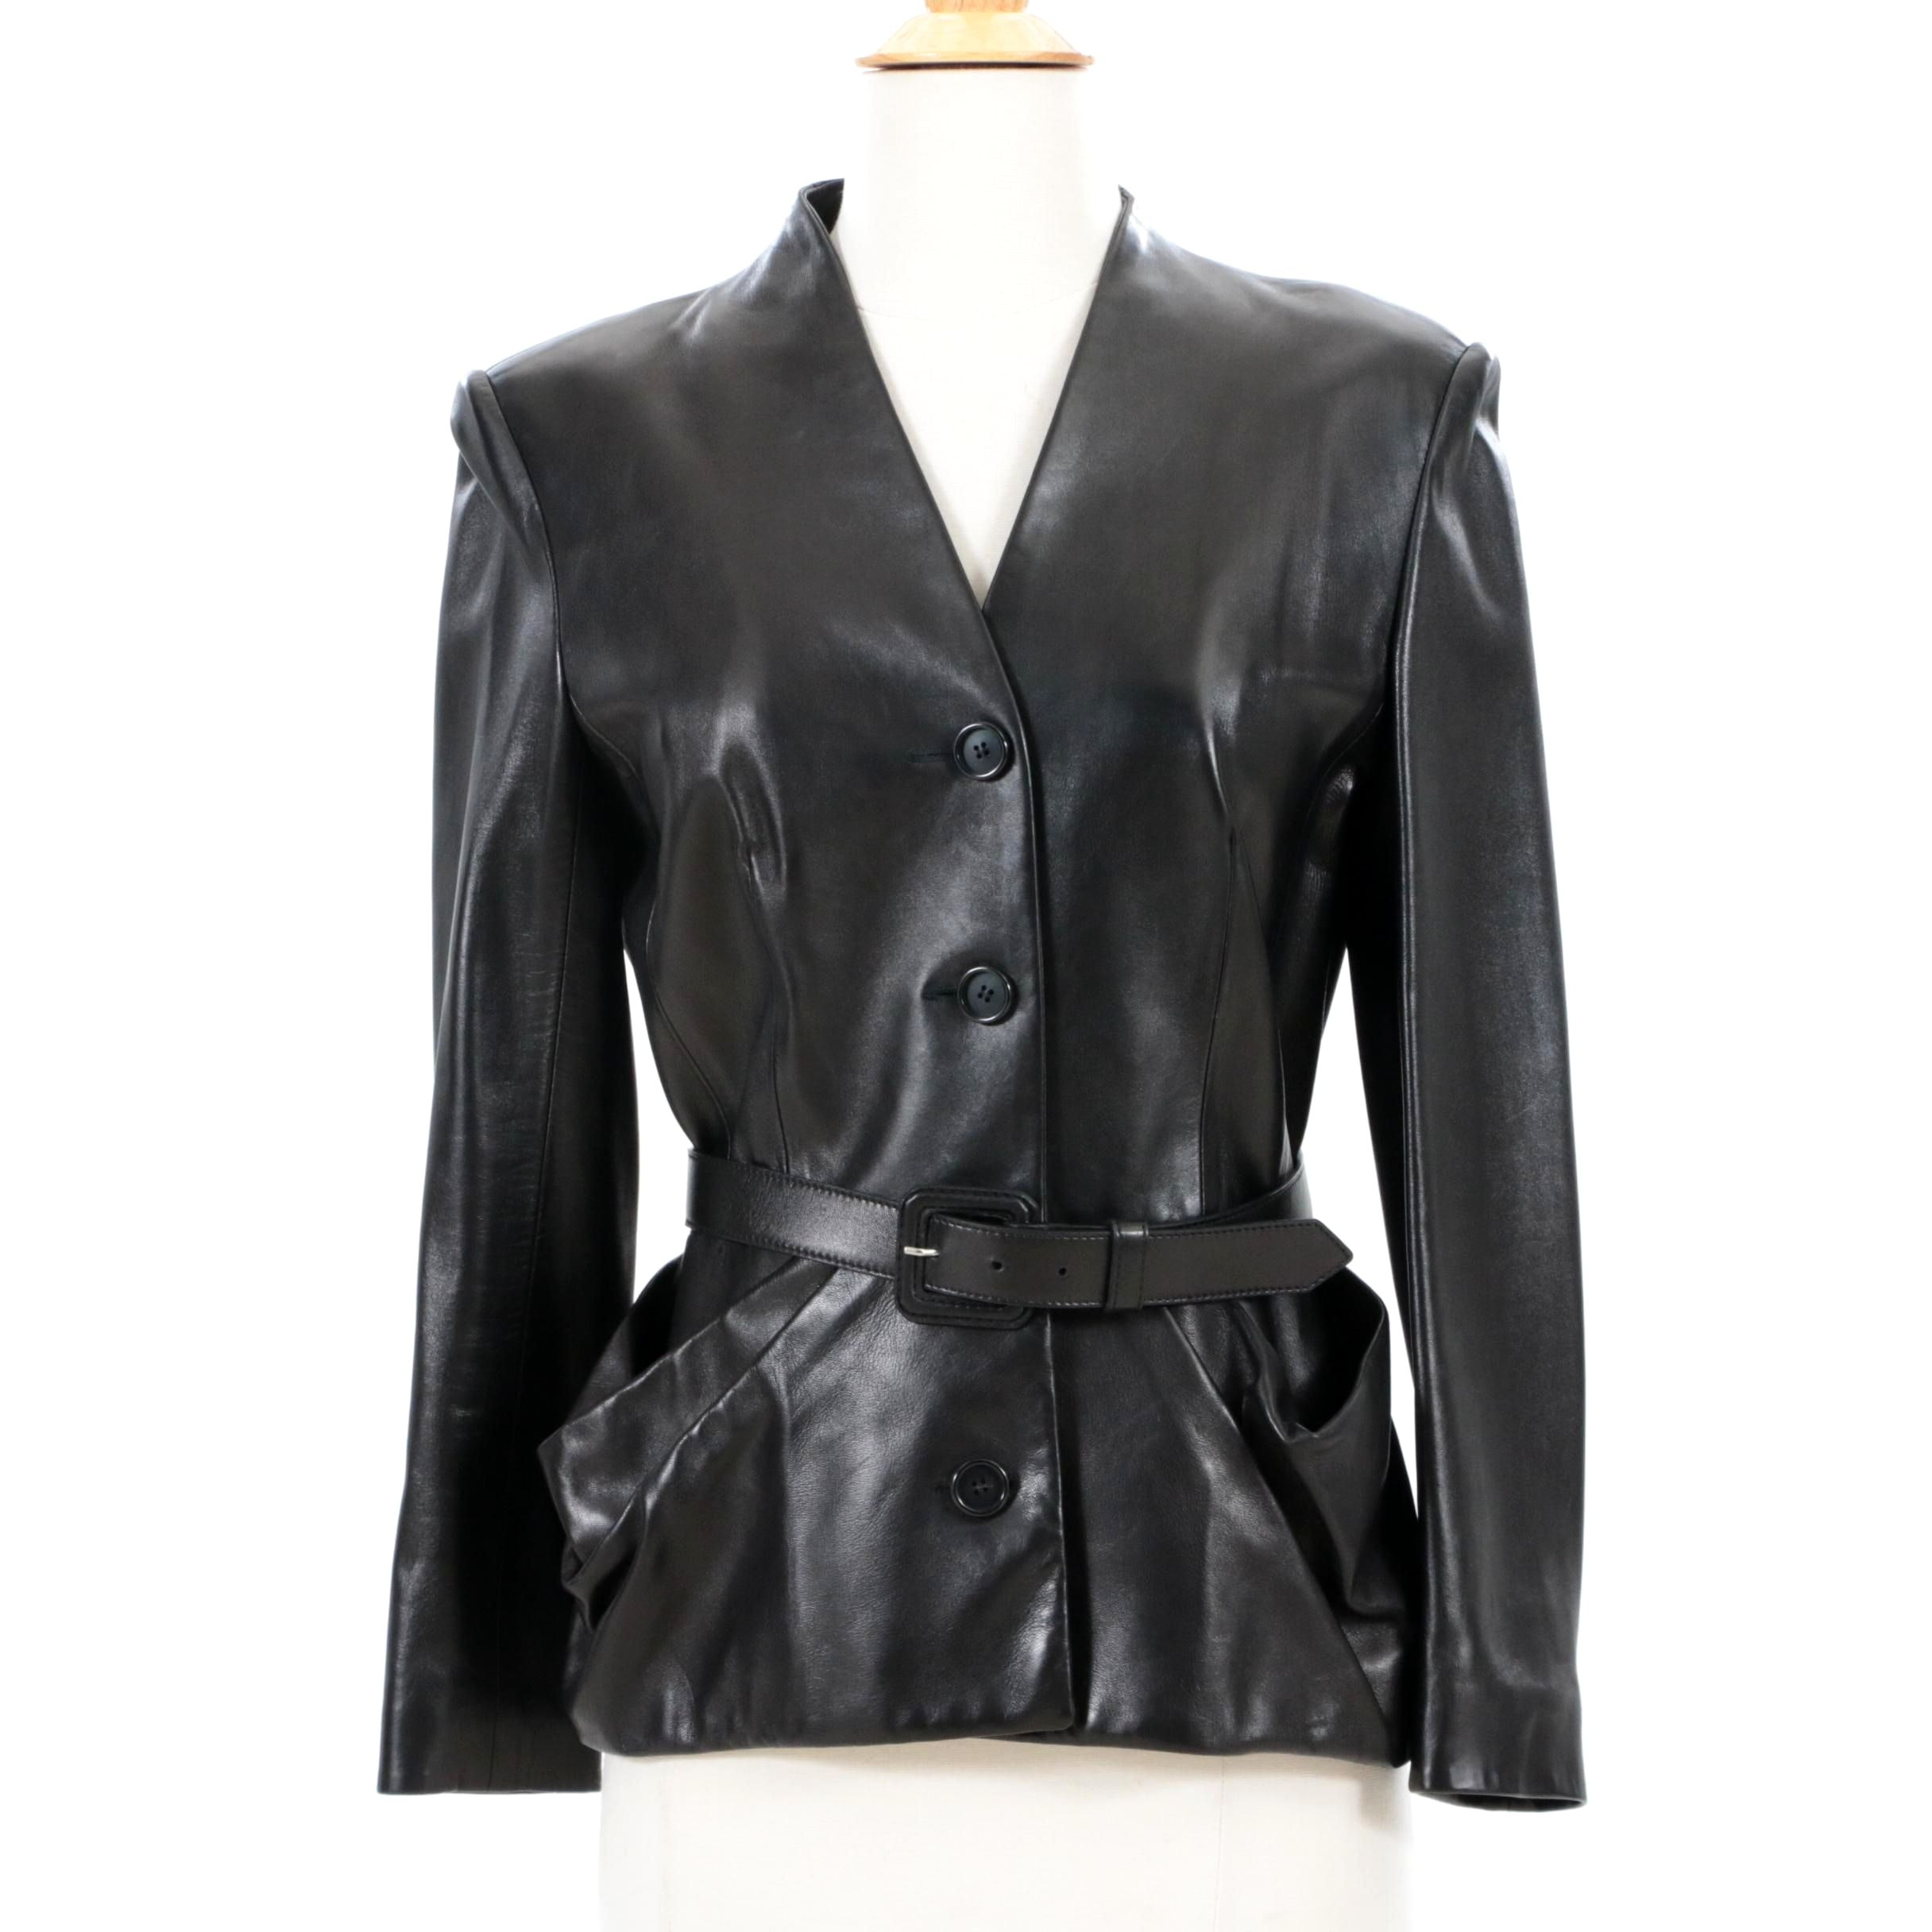 Christian Dior Paris Black Lambskin Leather Jacket with Matching Belt